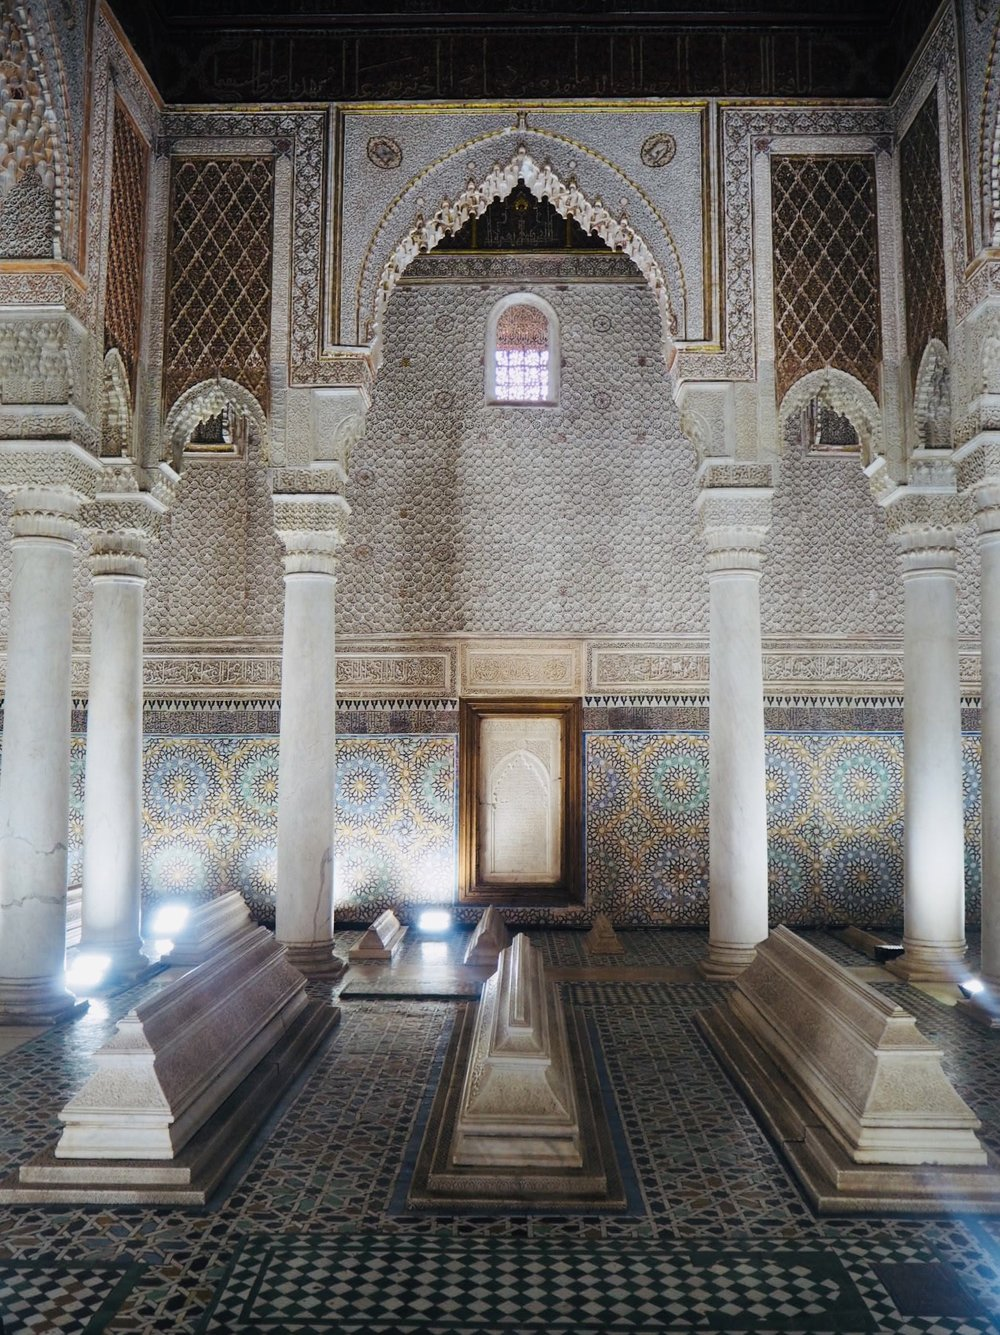 Saadian tombs - there, you've seen it